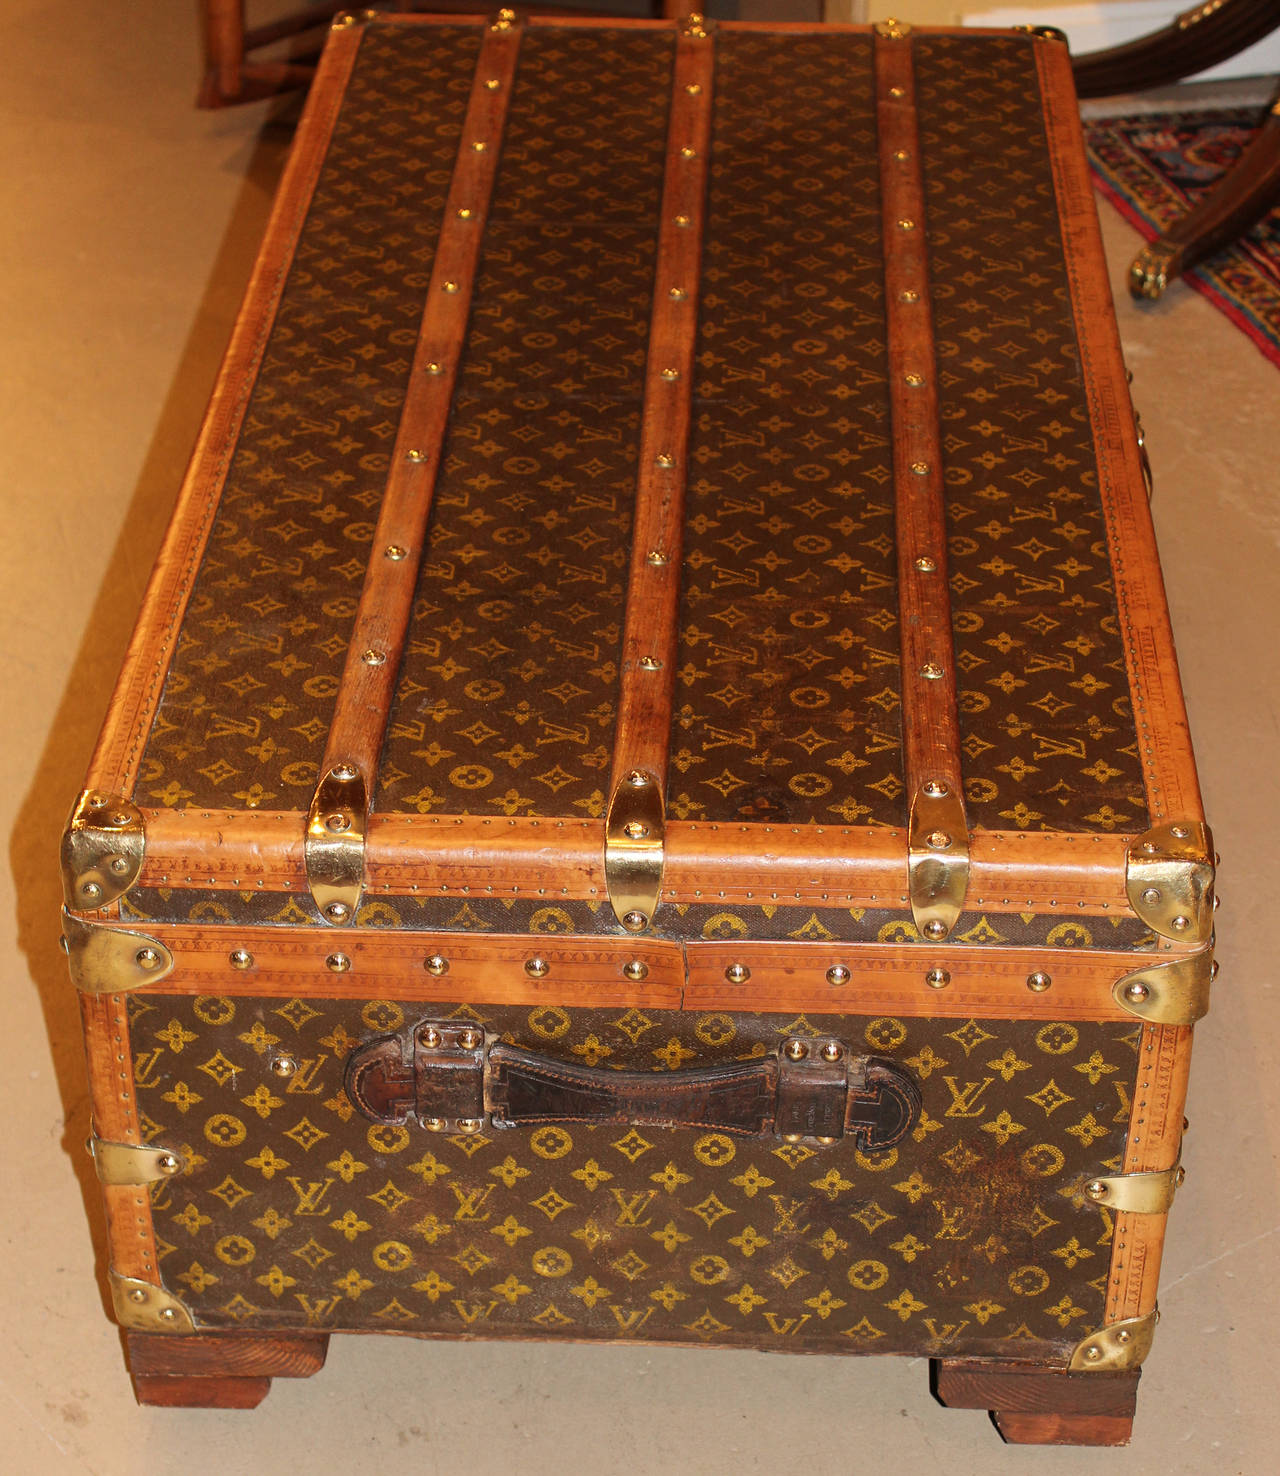 Lv Trunk Coffee Table: Louis Vuitton Cabin Trunk Or Coffee Table, Circa 1920s At